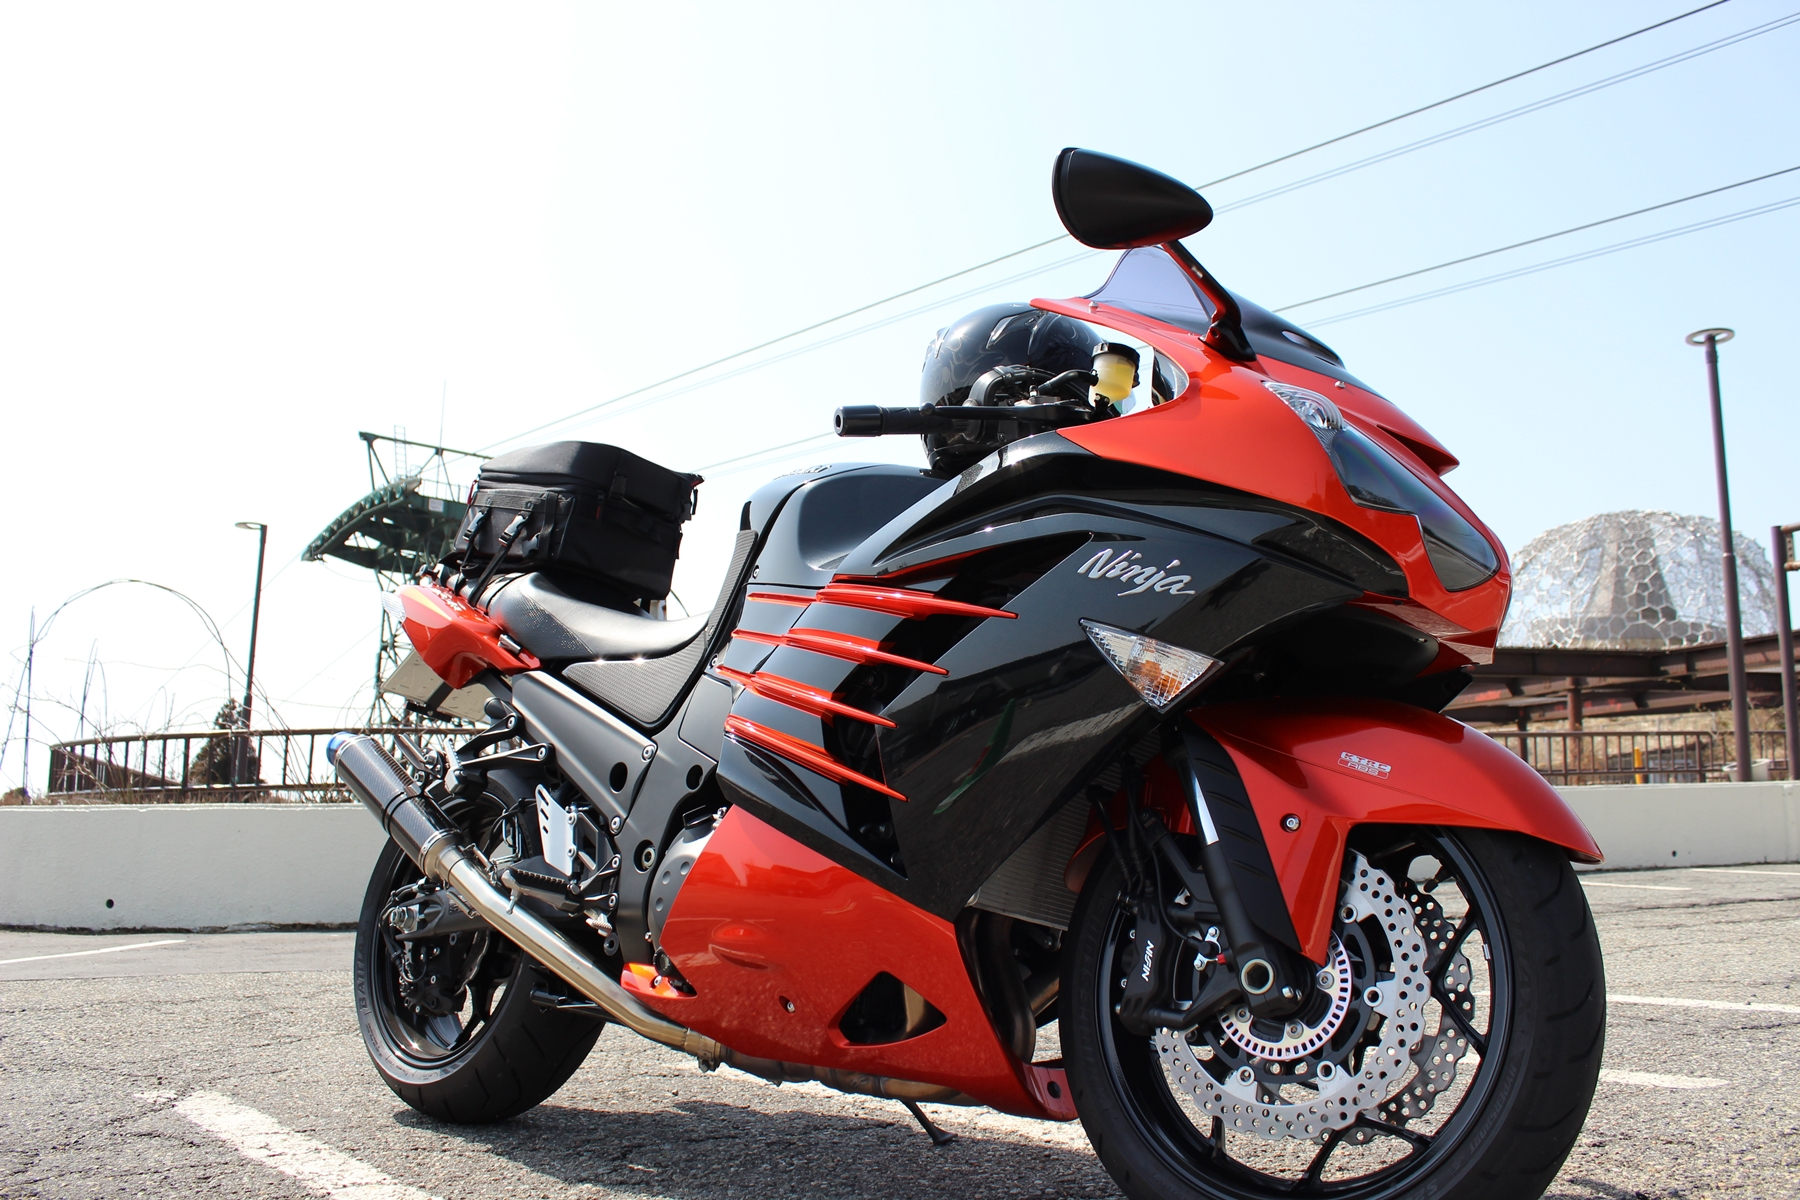 ZX-14R in 六甲山頂展望台